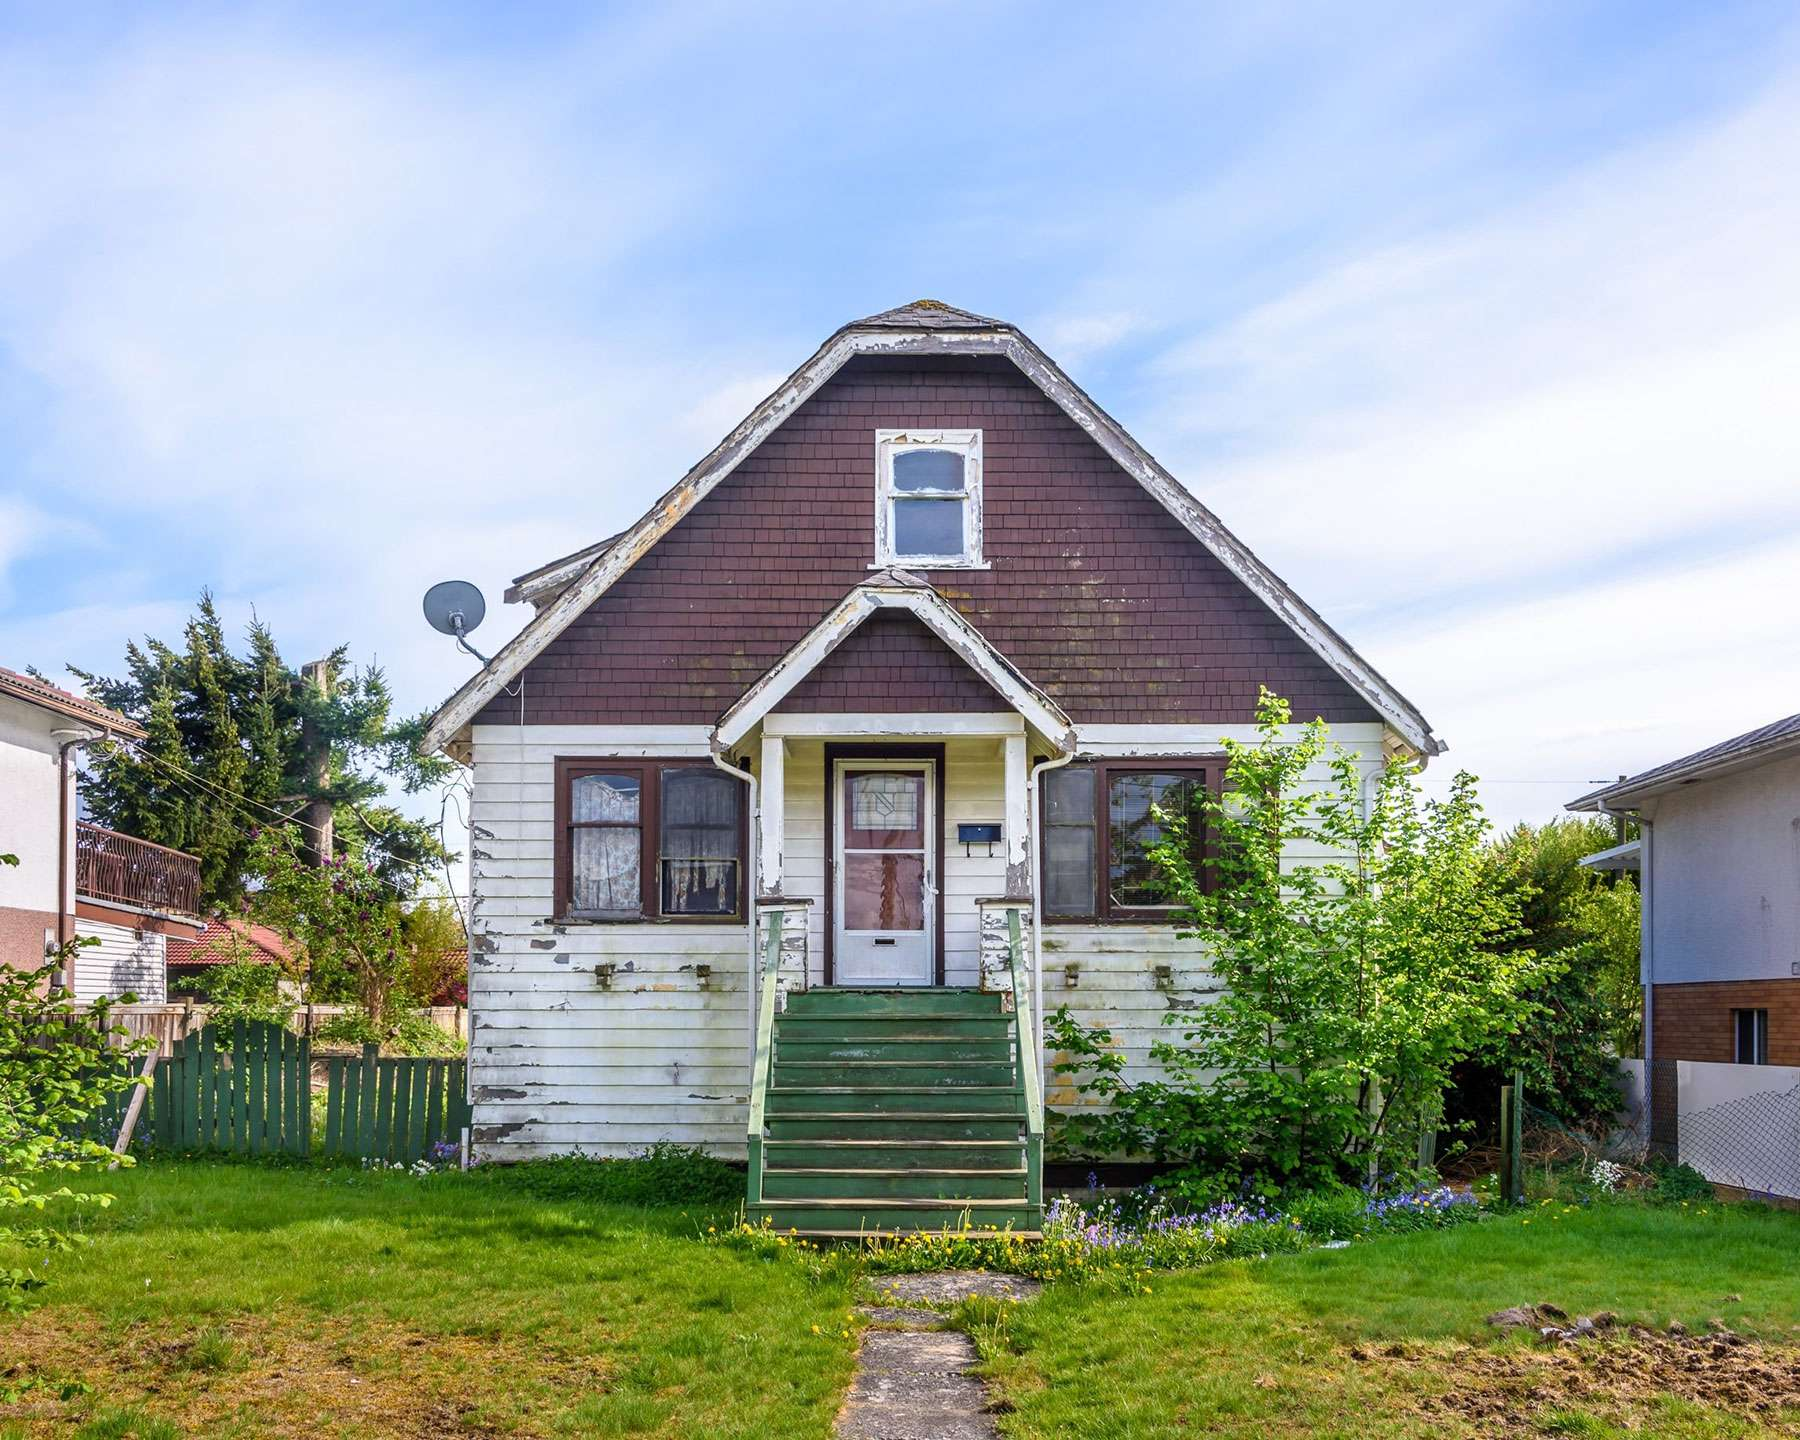 Old house to be demolished